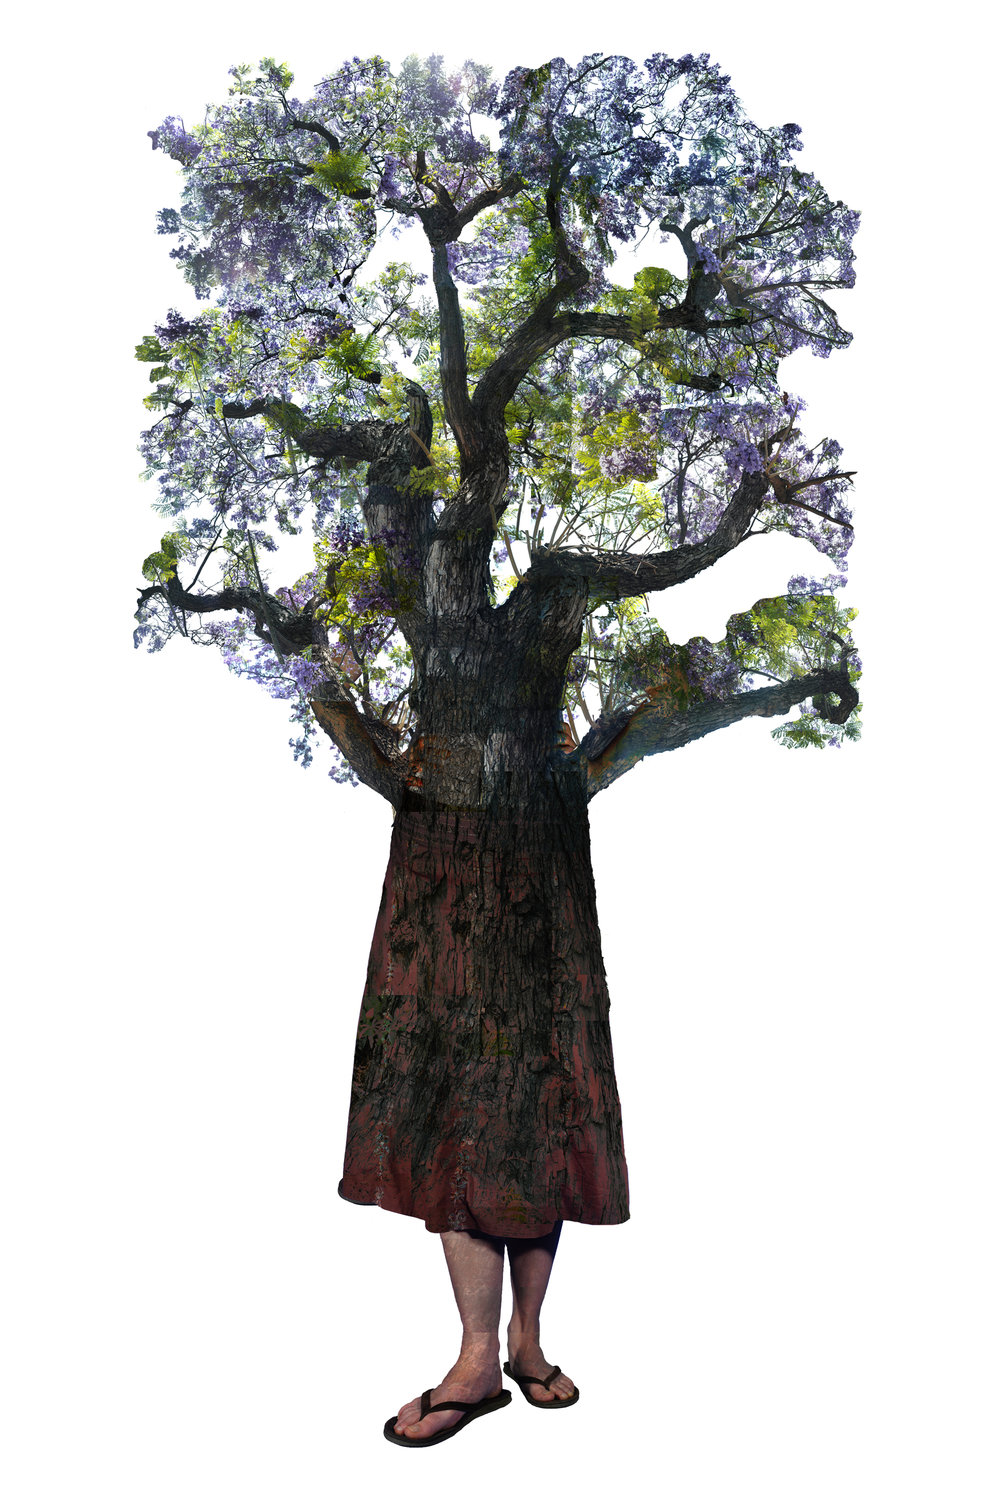 Annie Buckley,  V arina Jacaranda, 2008/2014  Digital pigment print, 24 x 16 in, edition of 30, 84 x 32 in, edition of 3   Inquire